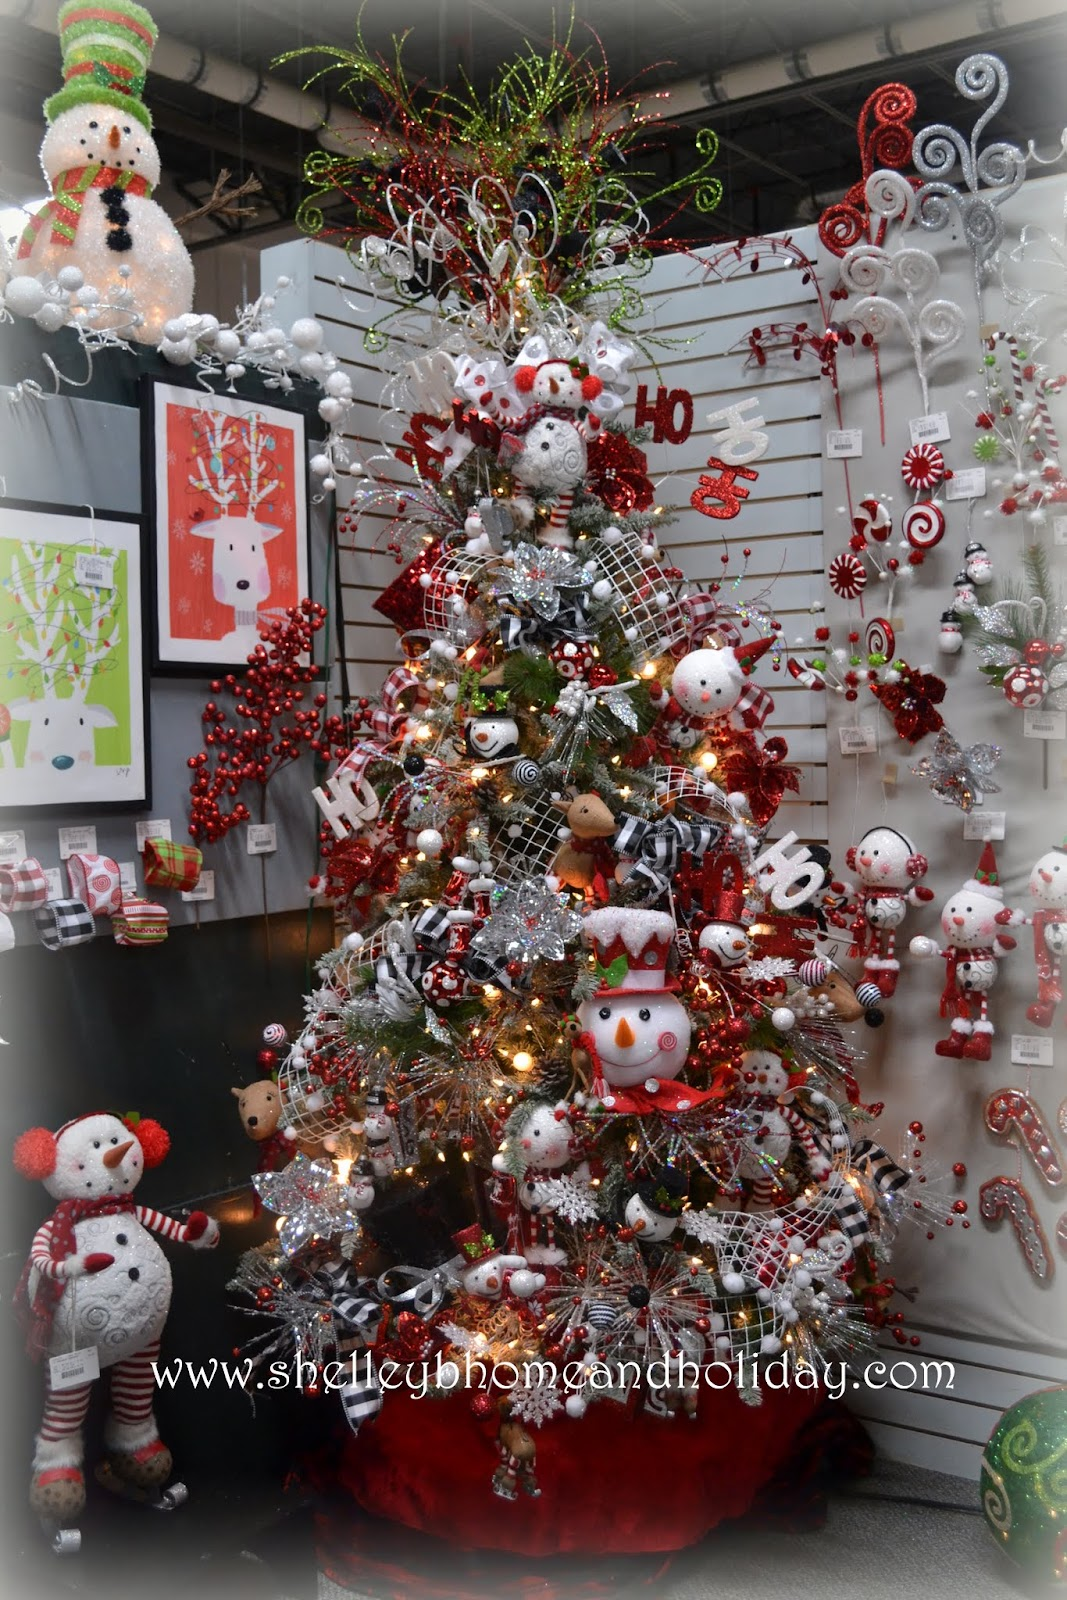 Raz christmas at shelley b home and holiday april 2013 - Decoraciones para navidad ...